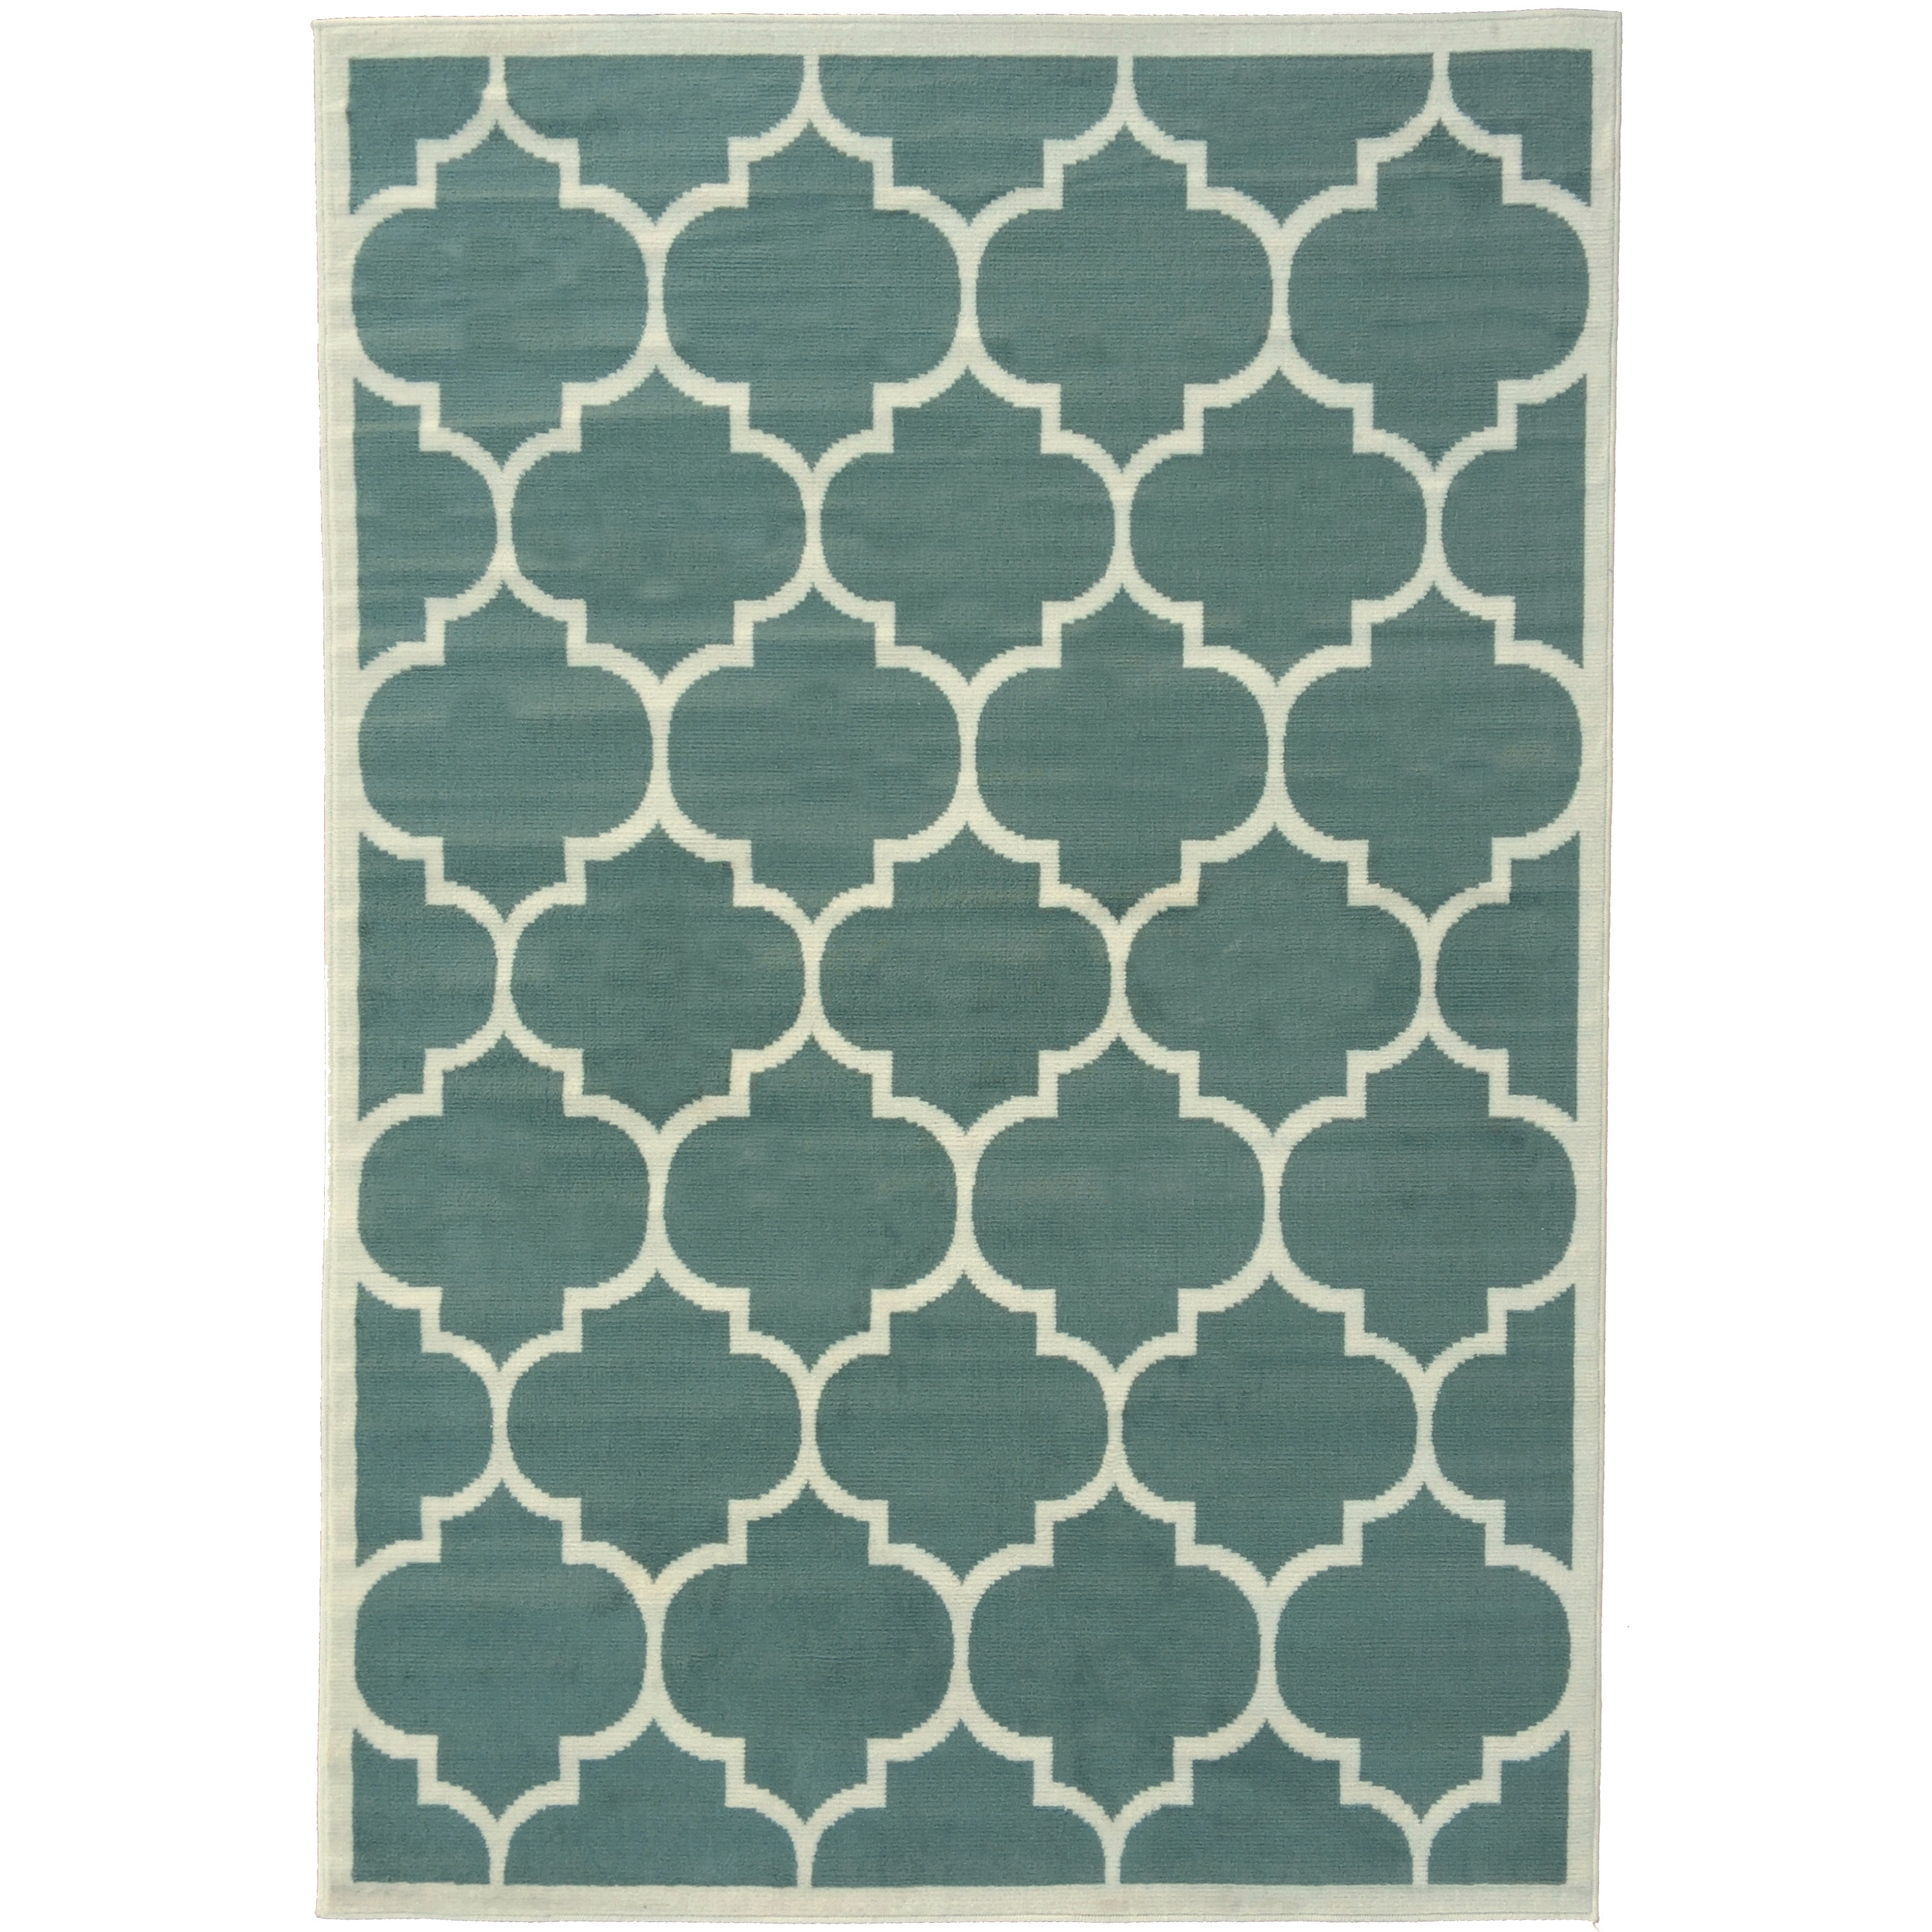 Sage Green Area Rug Rug Runners Green Rugs Manual 09 Pertaining To Rug Runners Green (#17 of 20)